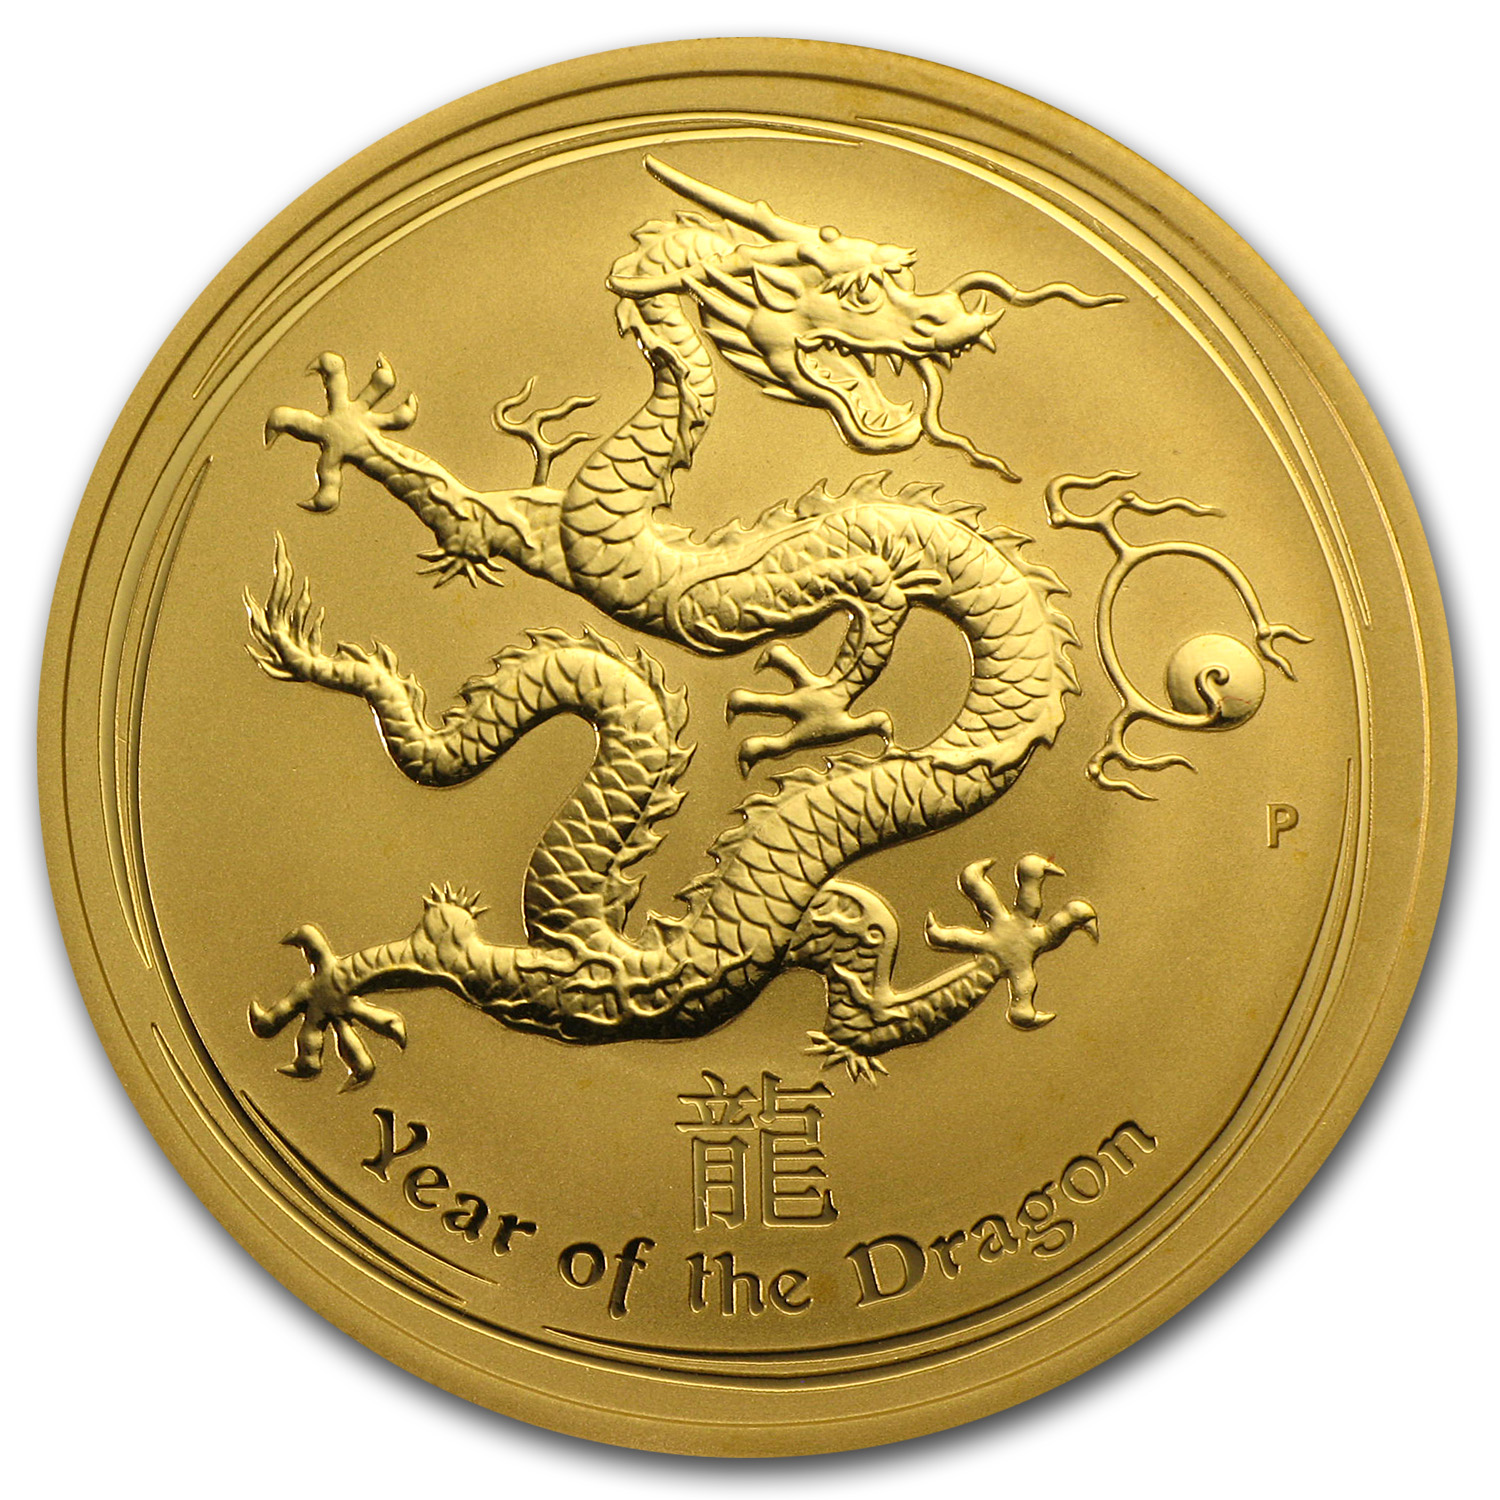 2012 1 oz Gold Lunar Year of the Dragon (SII) Light Abrasions